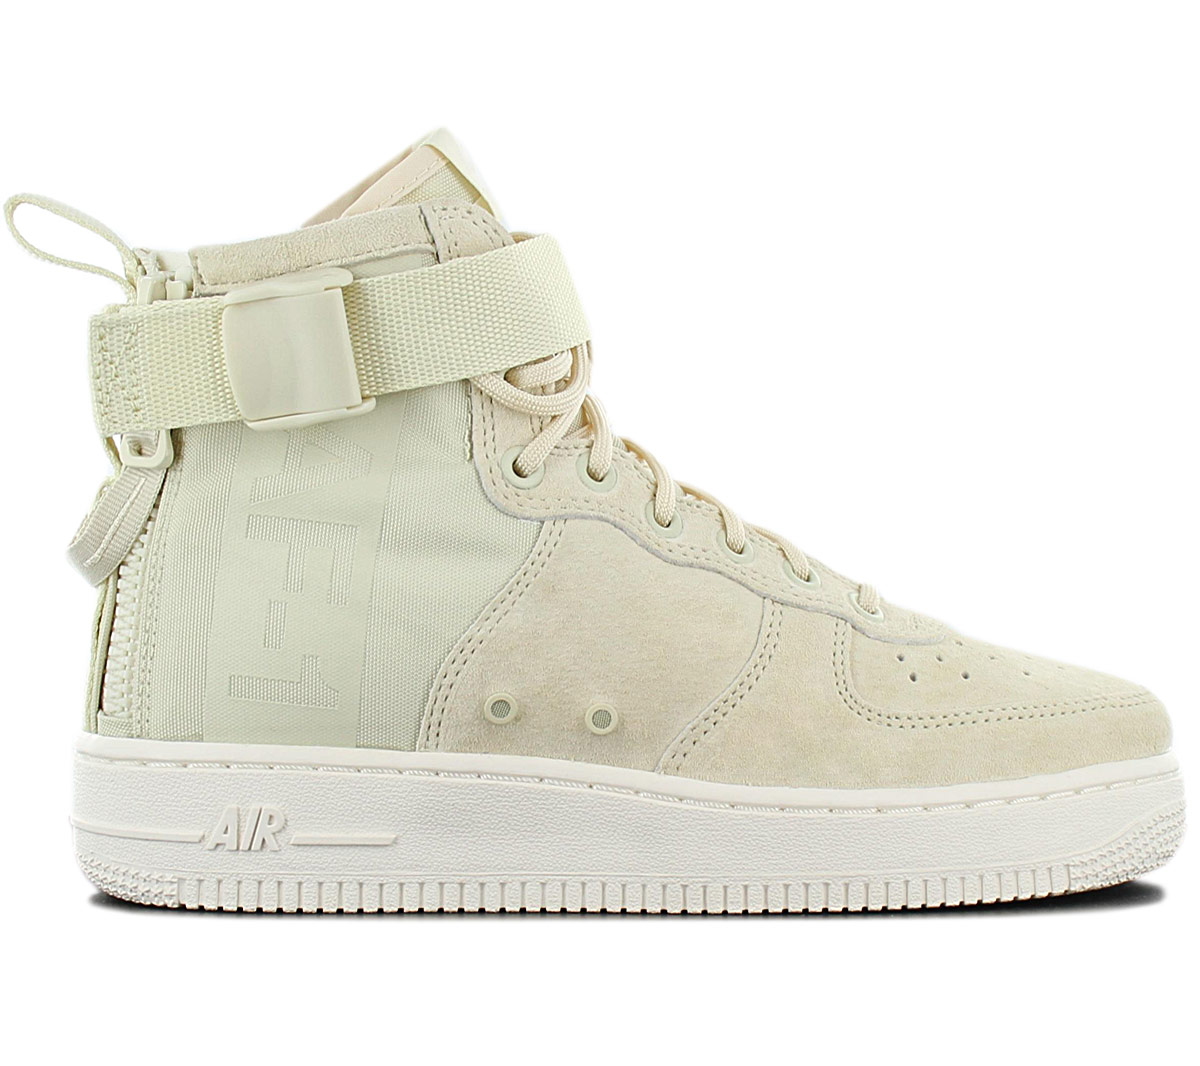 Details about Nike Sf Air Force 1 mid Fossil (W) AA3966 202 Women's Sneaker Shoes Trainers New